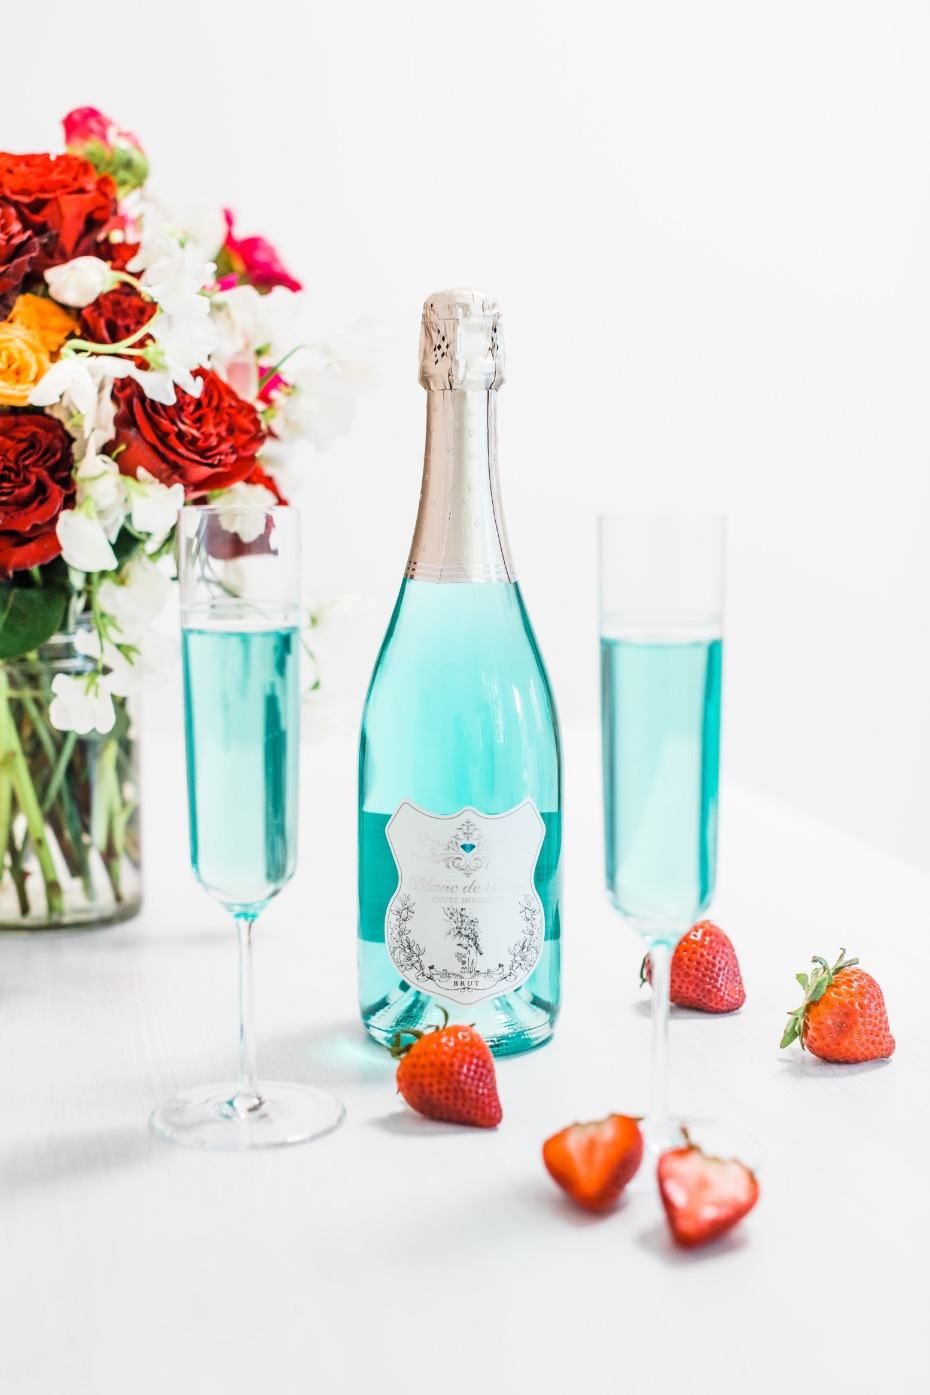 Blanc de Bleu Breakfast at Tiffany's Brunch Mimosa